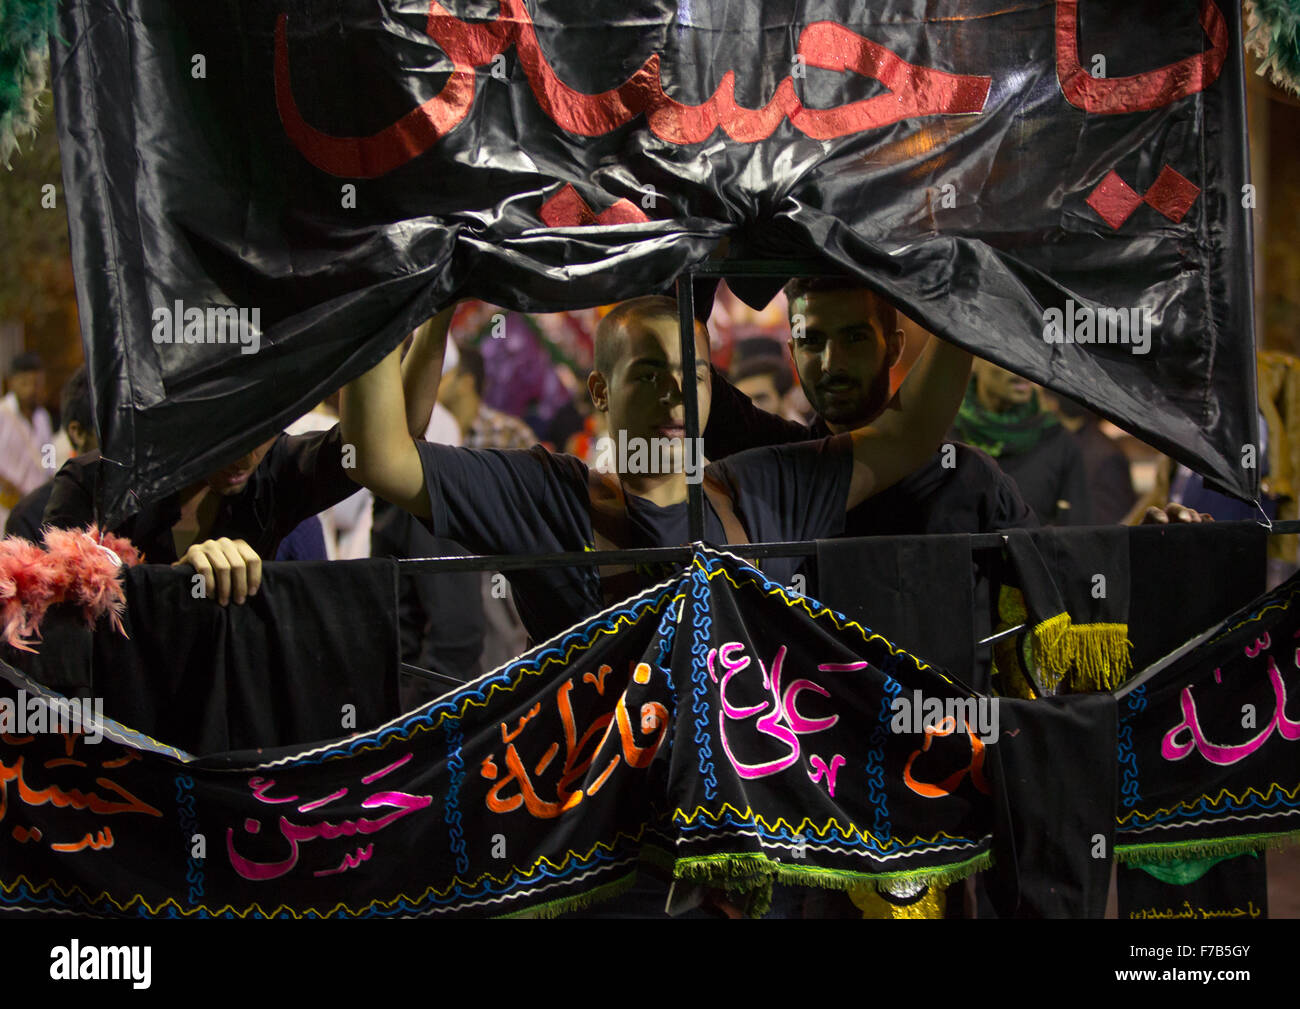 Iranian Shiite Muslim Man Carries An Alam In The Street During Muharram, Isfahan Province, Kashan, Iran - Stock Image